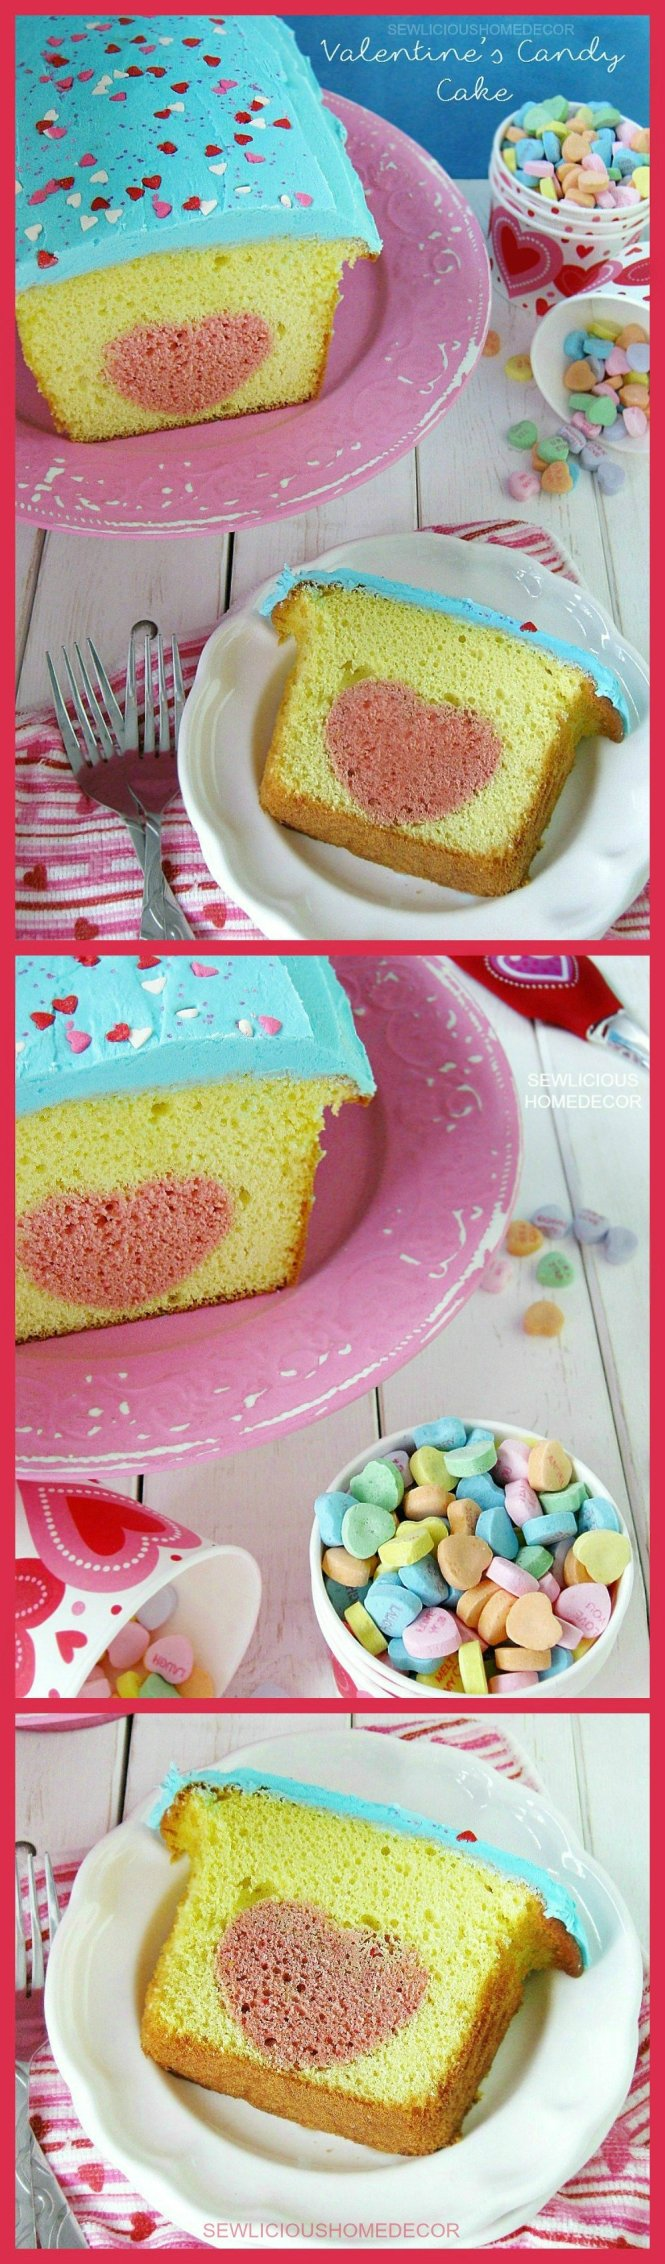 Lemon Valentines Day Heart Candy Cake sewlicioushomedecor.com